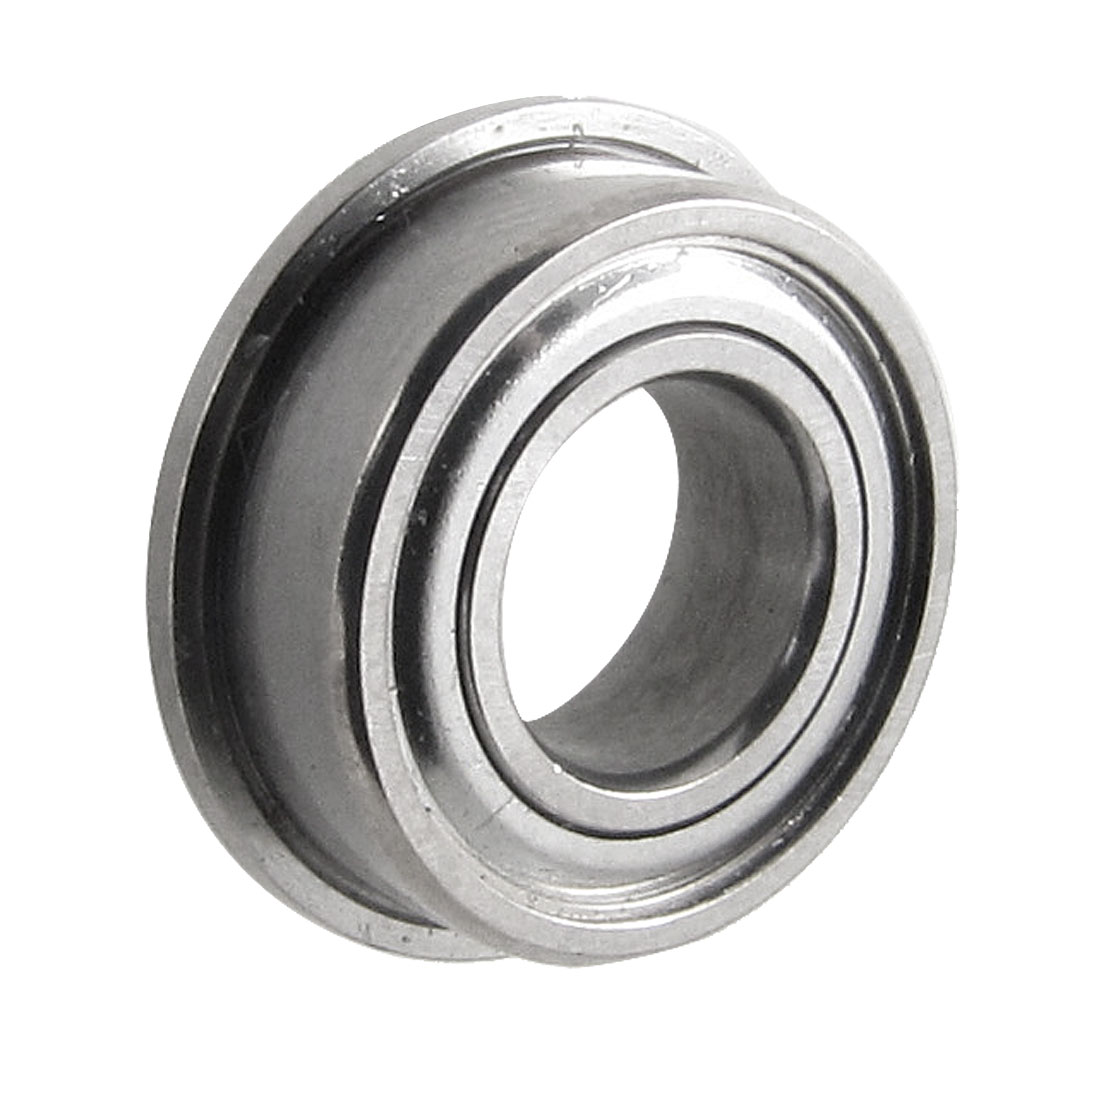 12mm x 6mm x 4mm Metal Shields Deep Groove Flanged Ball Bearing Silver Tone